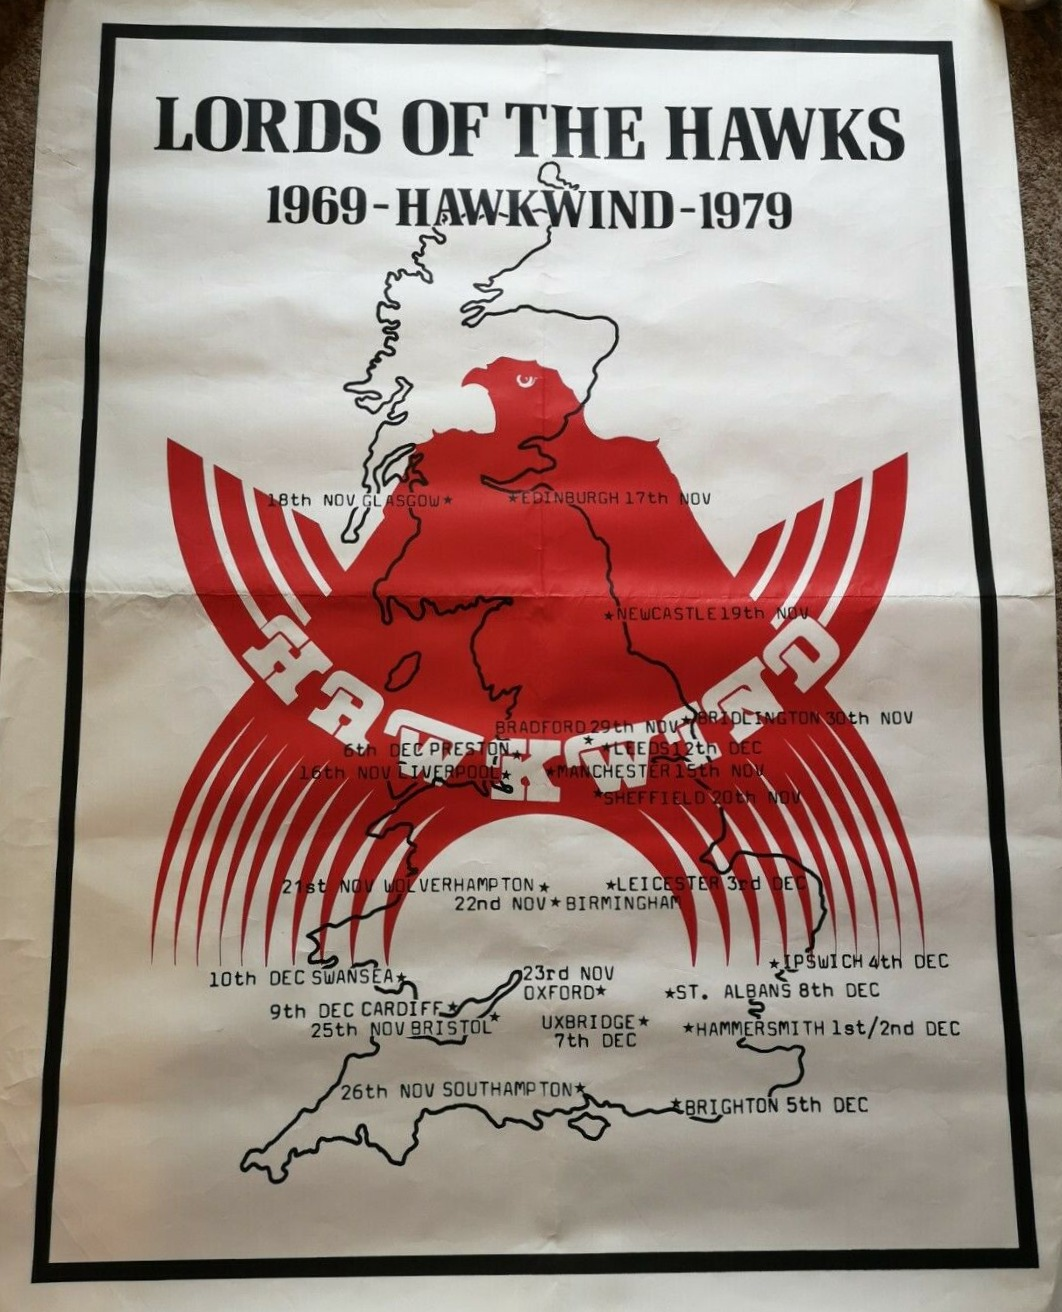 ORIGINAL-Hawkwind-Poster-Lords-of-the-Ha